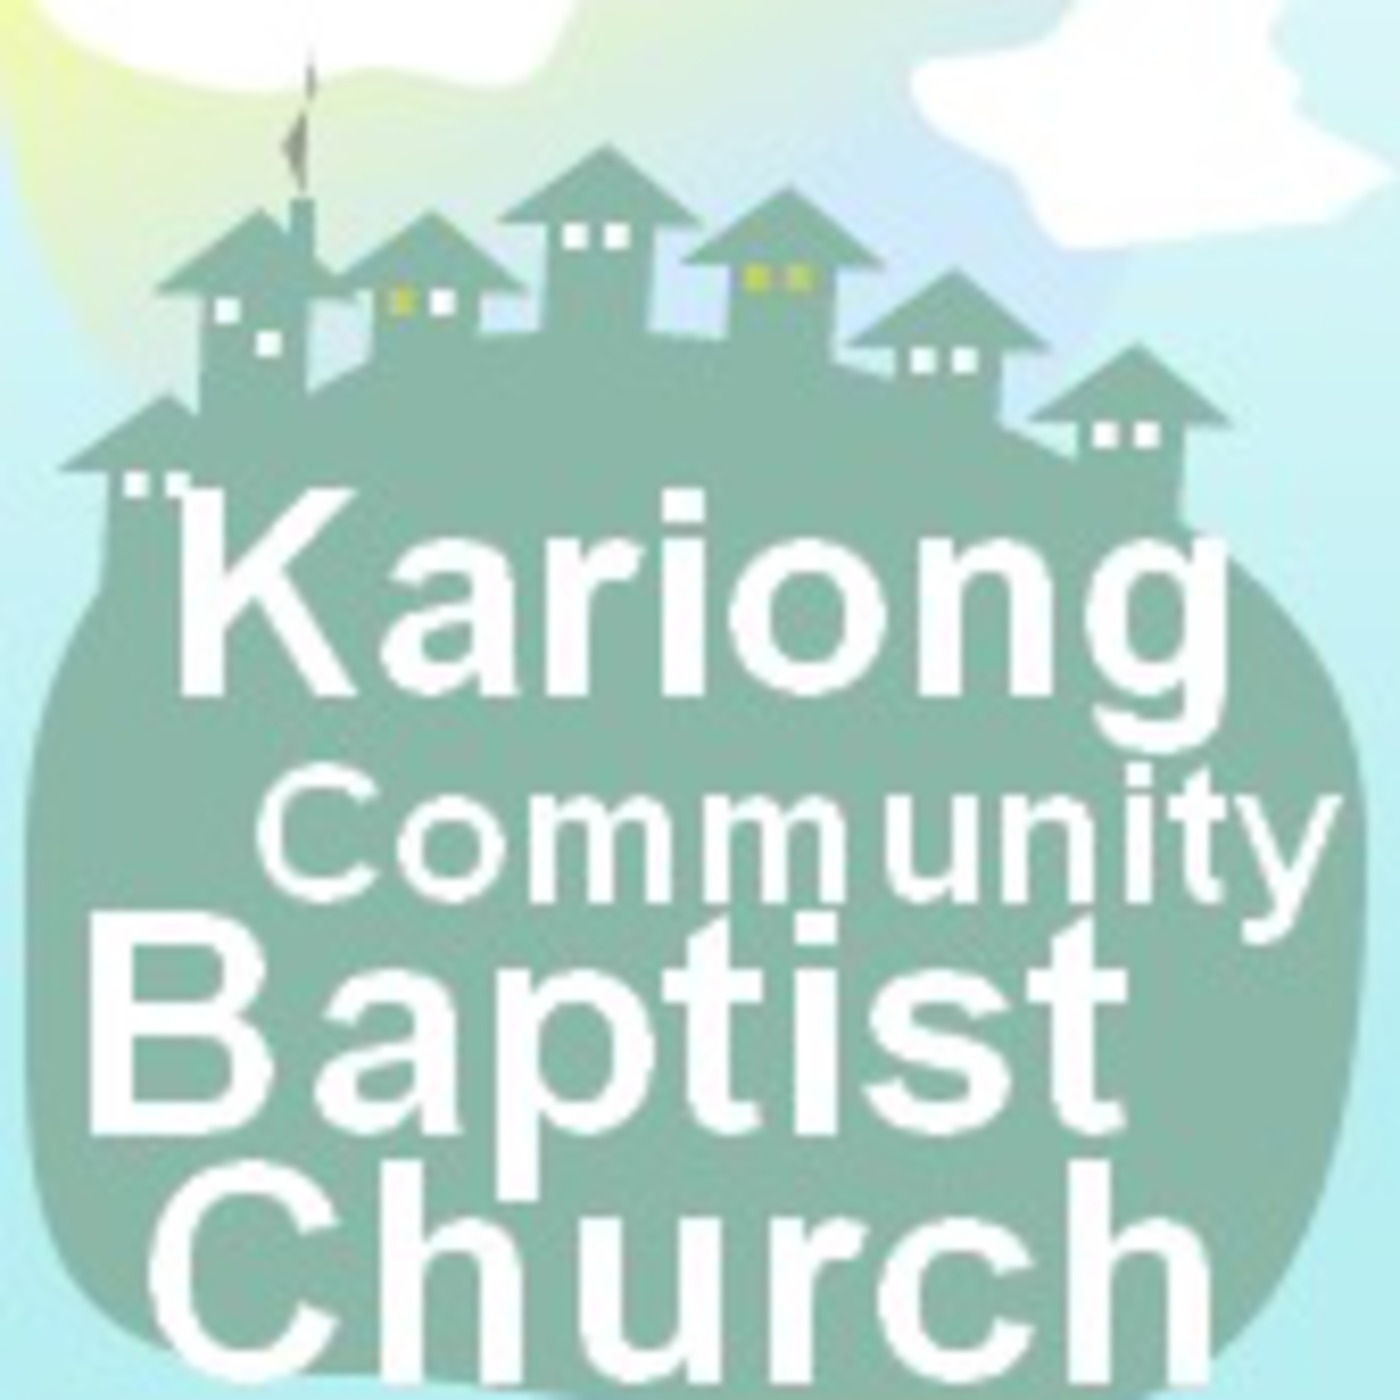 Kariong Community Baptist Church's podcast